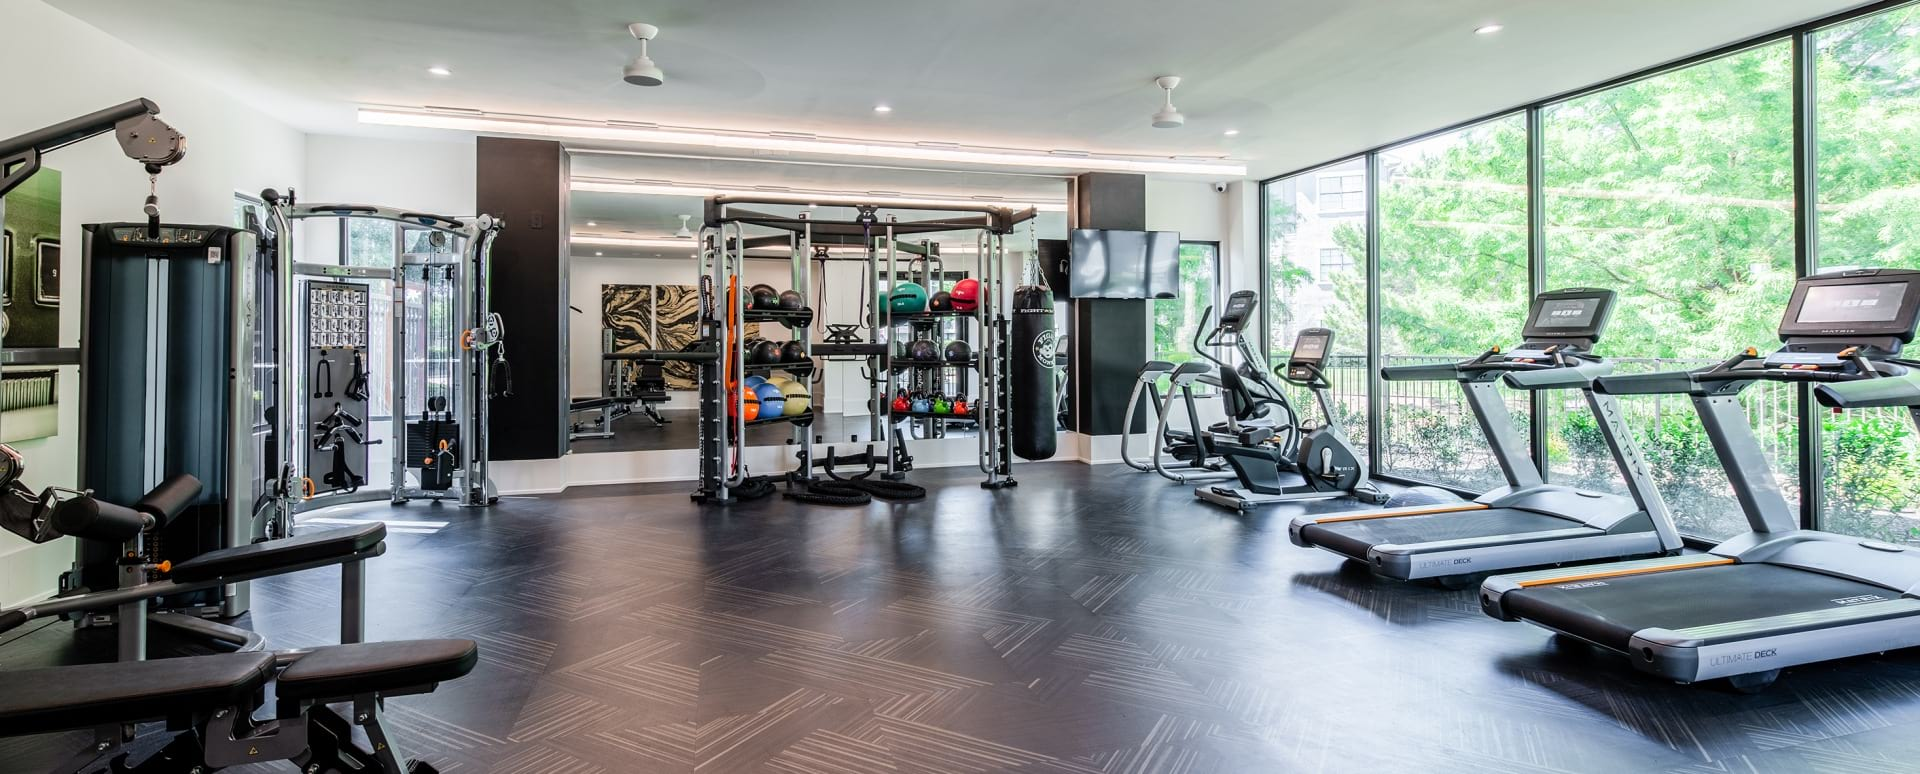 Brand New Fitness Center with Spin Studio